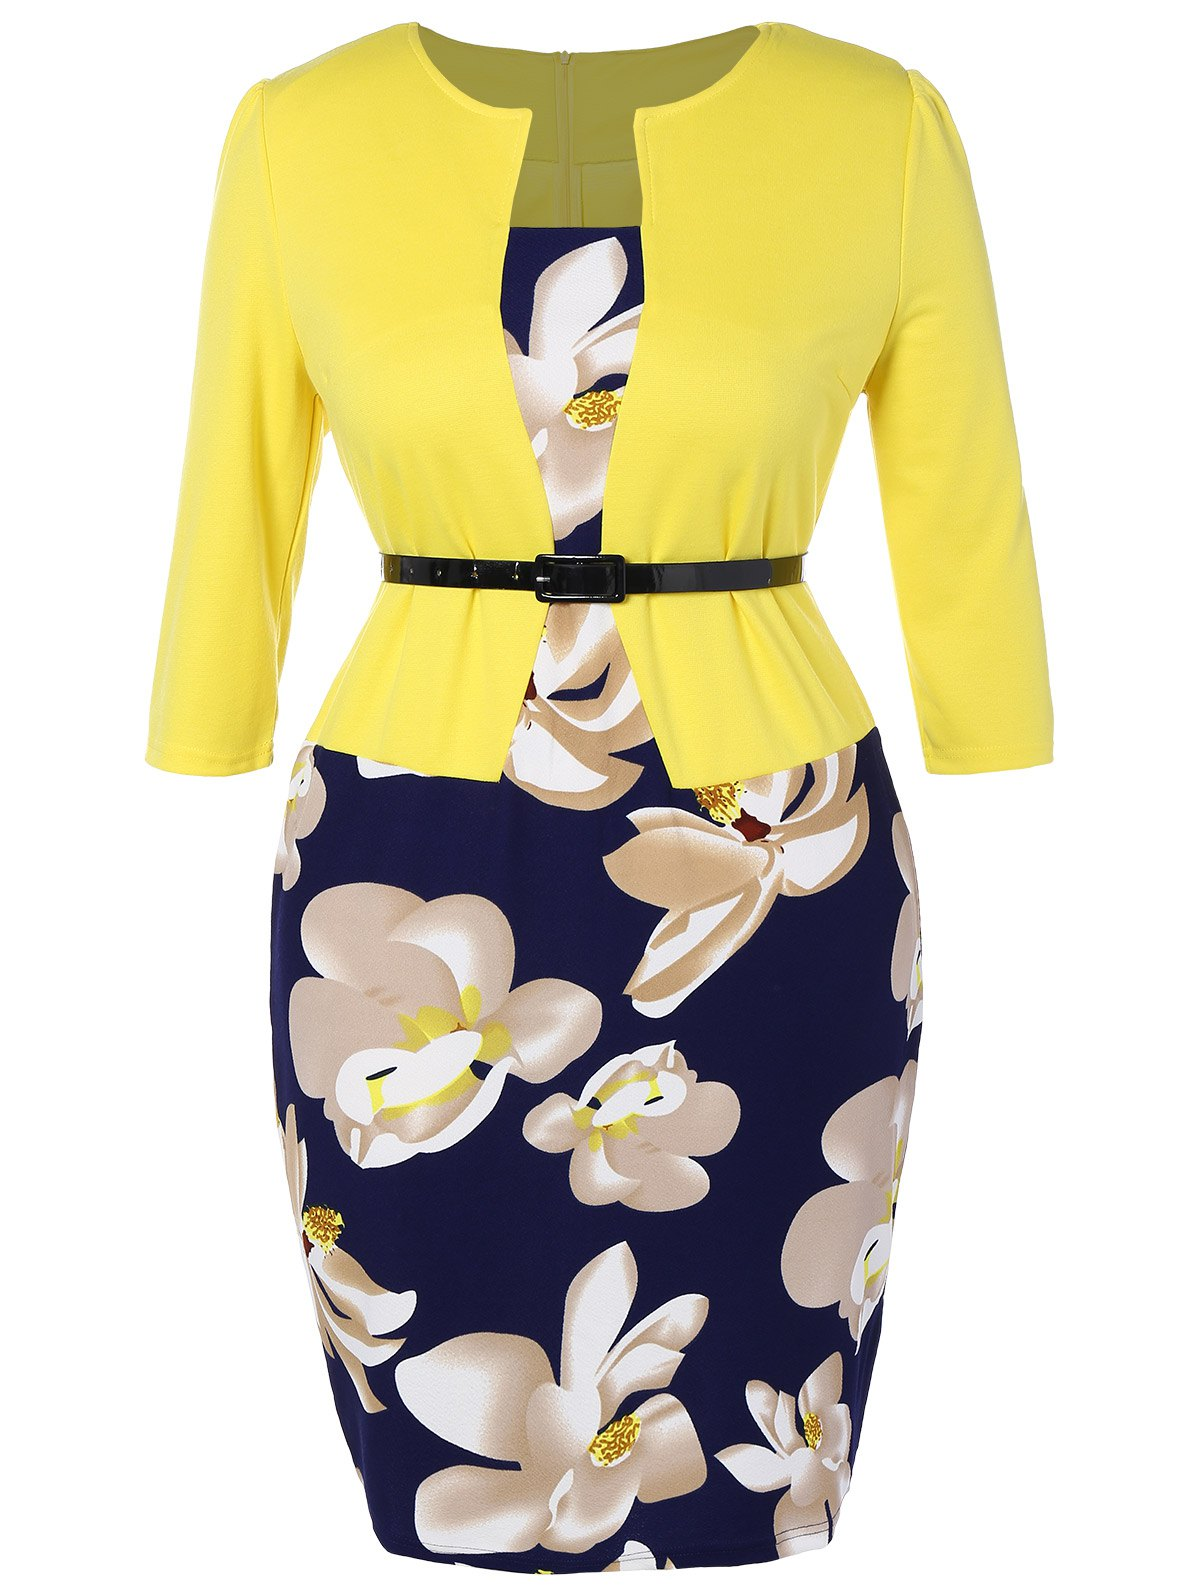 Plus Size Mid Length Pencil Peplum DressWOMEN<br><br>Size: 4XL; Color: YELLOW; Style: Work; Material: Cotton Blend,Polyester; Silhouette: Sheath; Dresses Length: Mid-Calf; Neckline: Square Collar; Sleeve Length: 3/4 Length Sleeves; Pattern Type: Print; With Belt: Yes; Season: Fall,Spring; Weight: 0.403kg; Package Contents: 1 x Dress  1 x Belt;